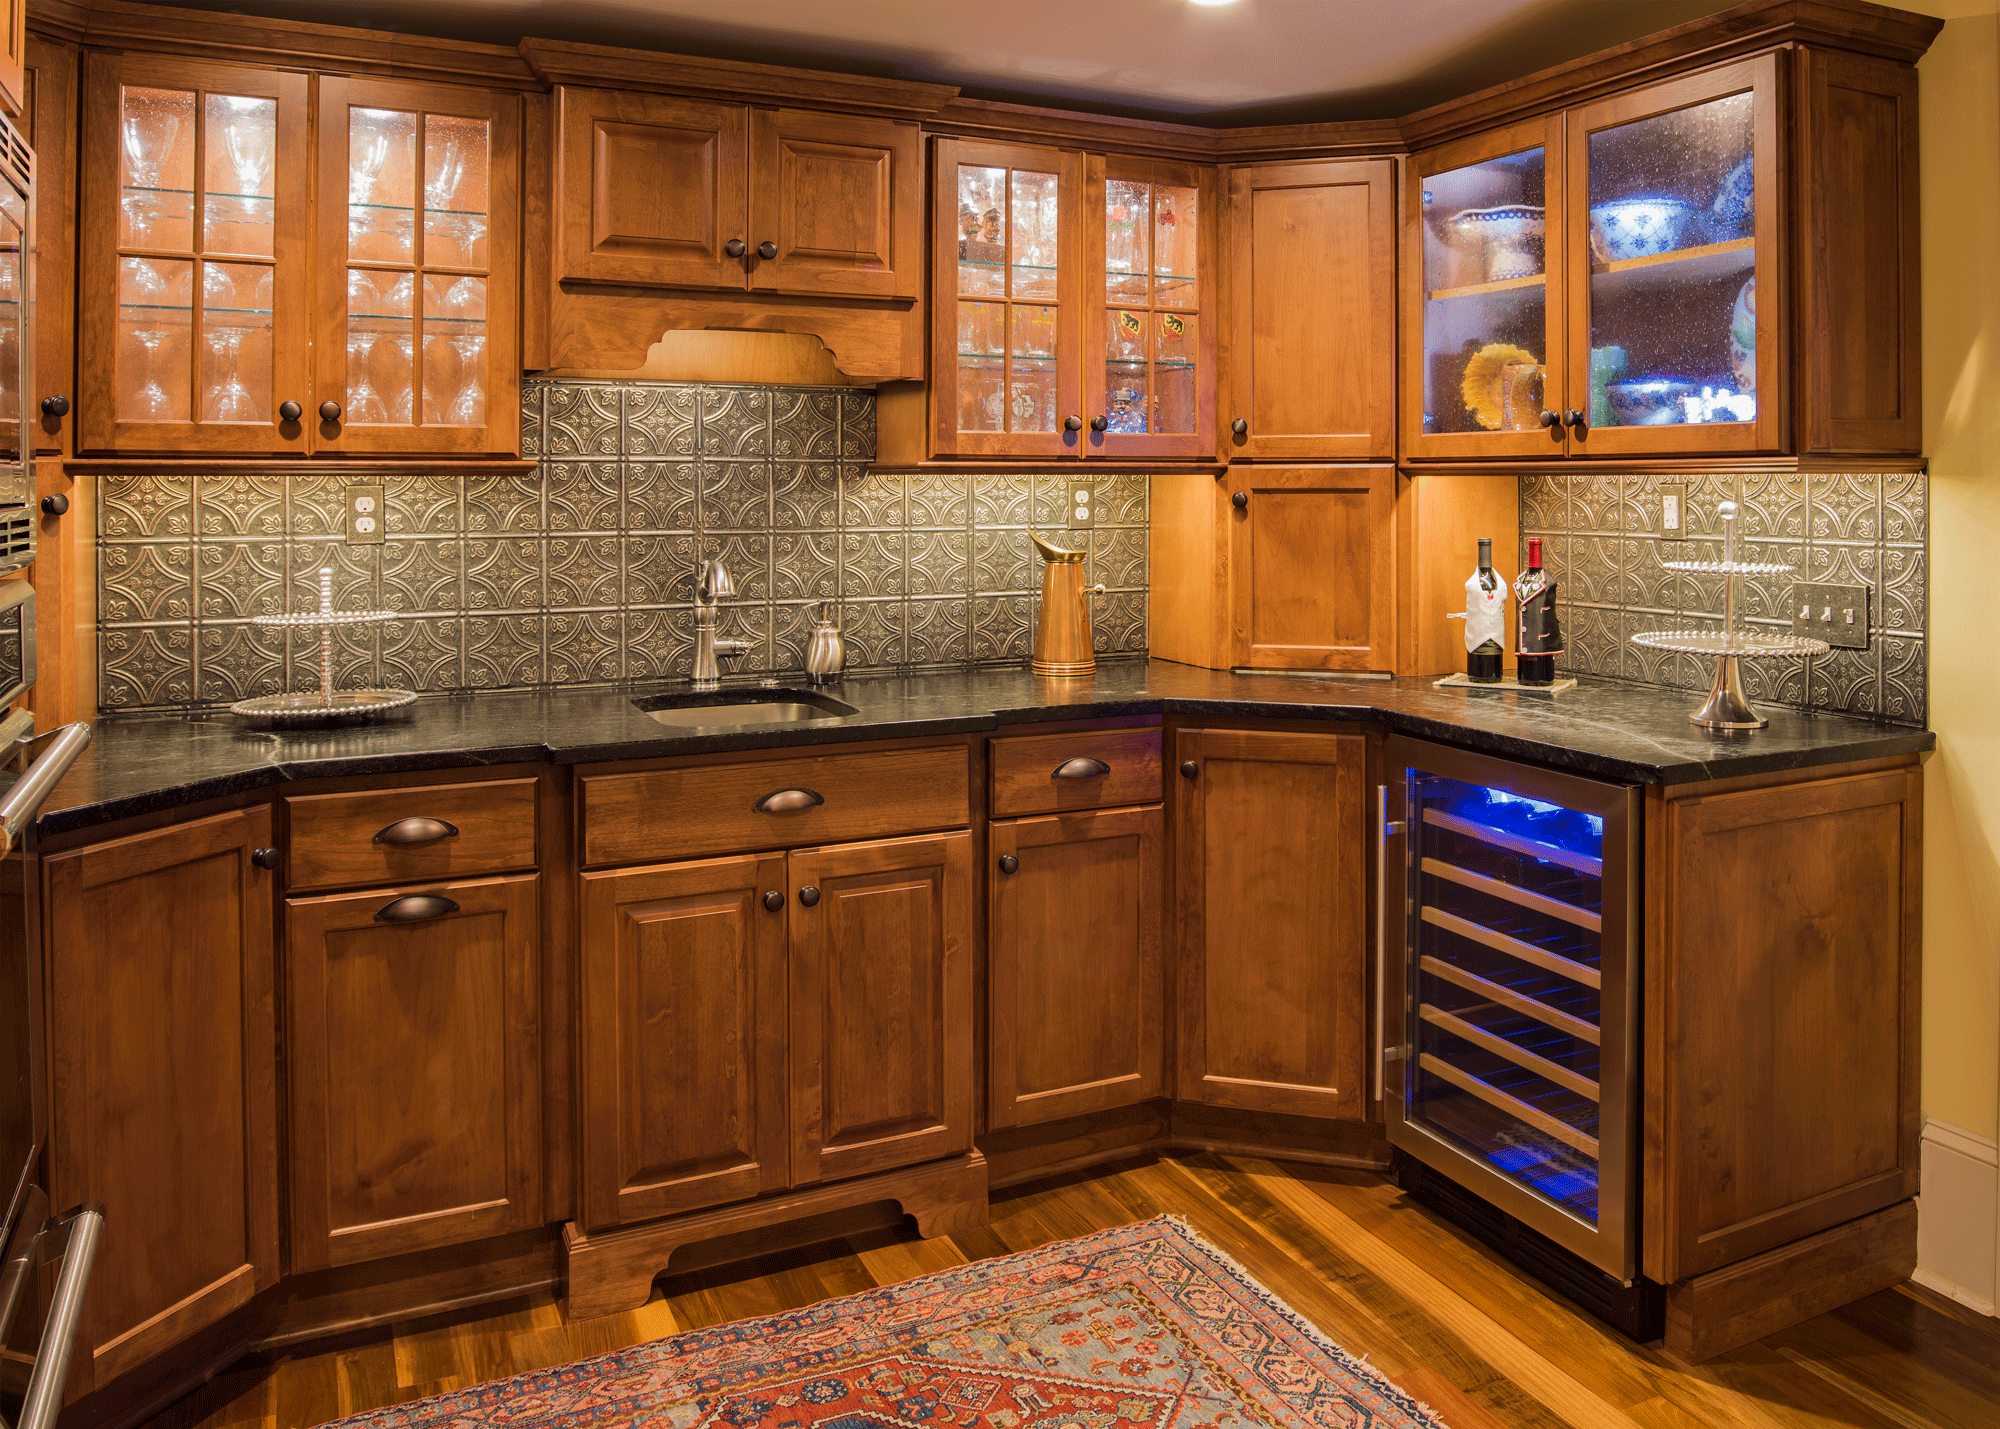 kitchen remodel with cabinetry, backsplash, and storage